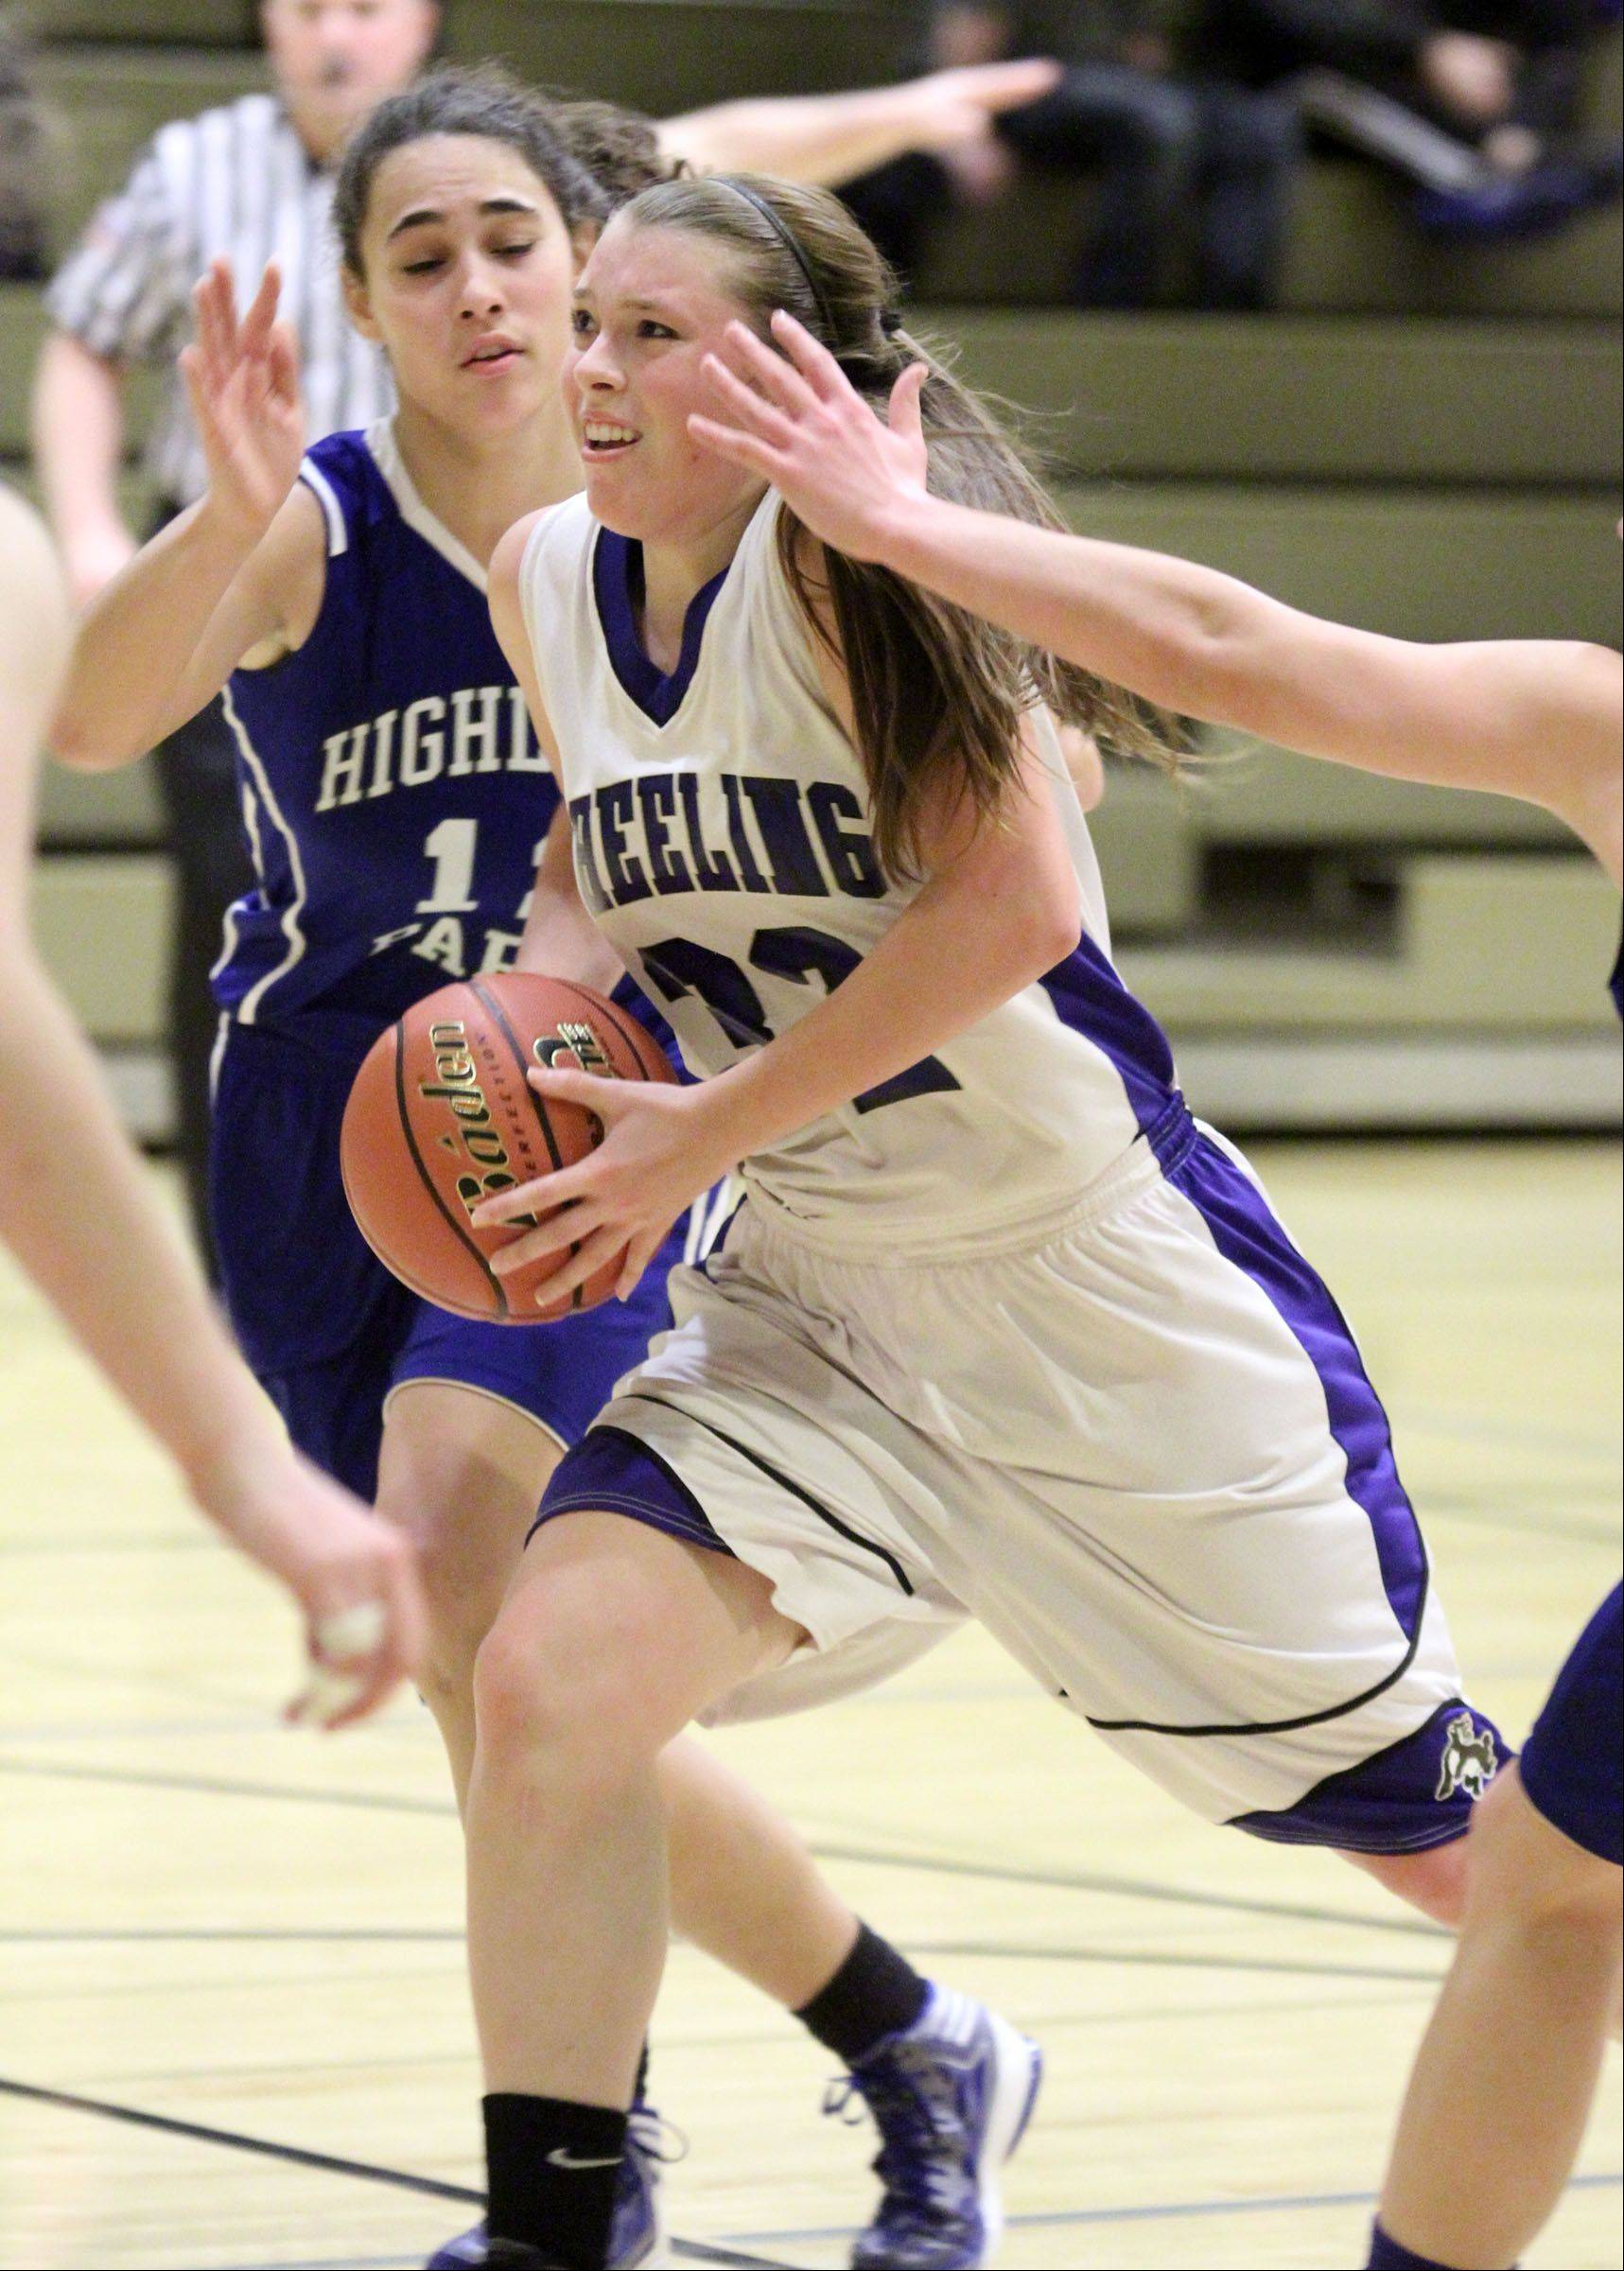 Wheeling's Brie Majkowski drives the lane against Highland Park at Wheeling on Thursday.